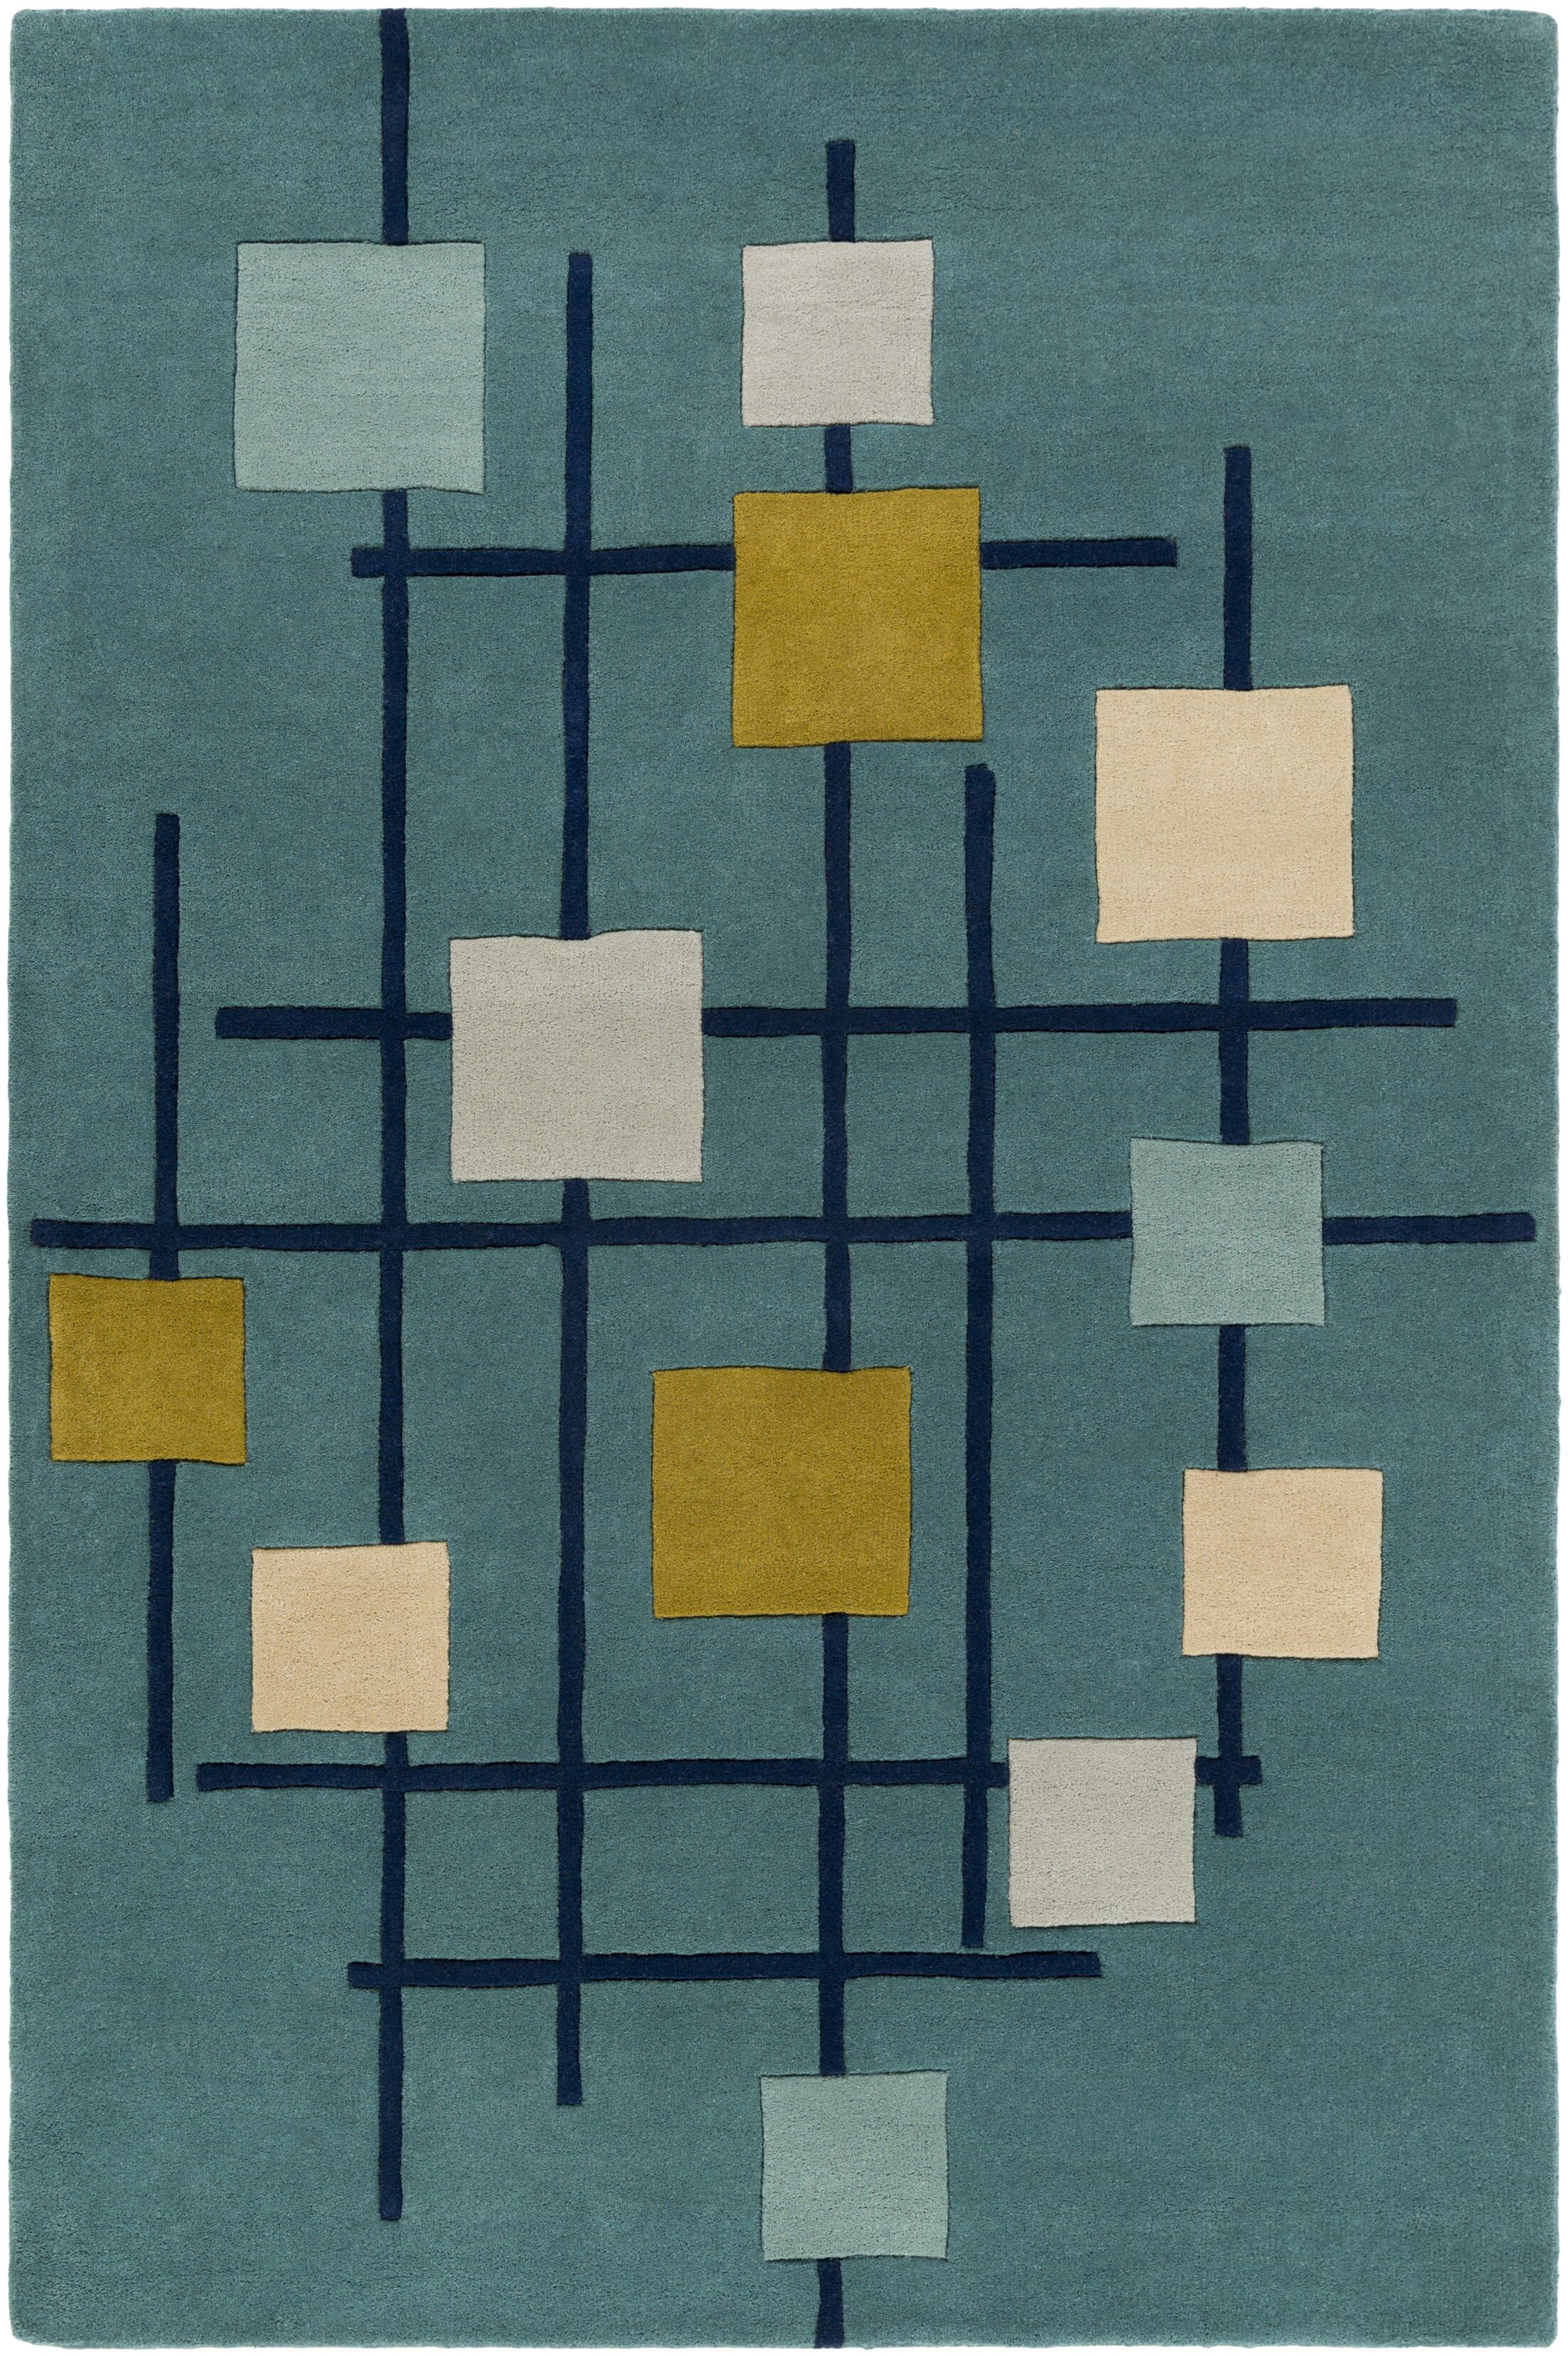 Dewald Hand-Tufted Teal Blue Area Rug Rug Size: Rectangle 6' x 9'